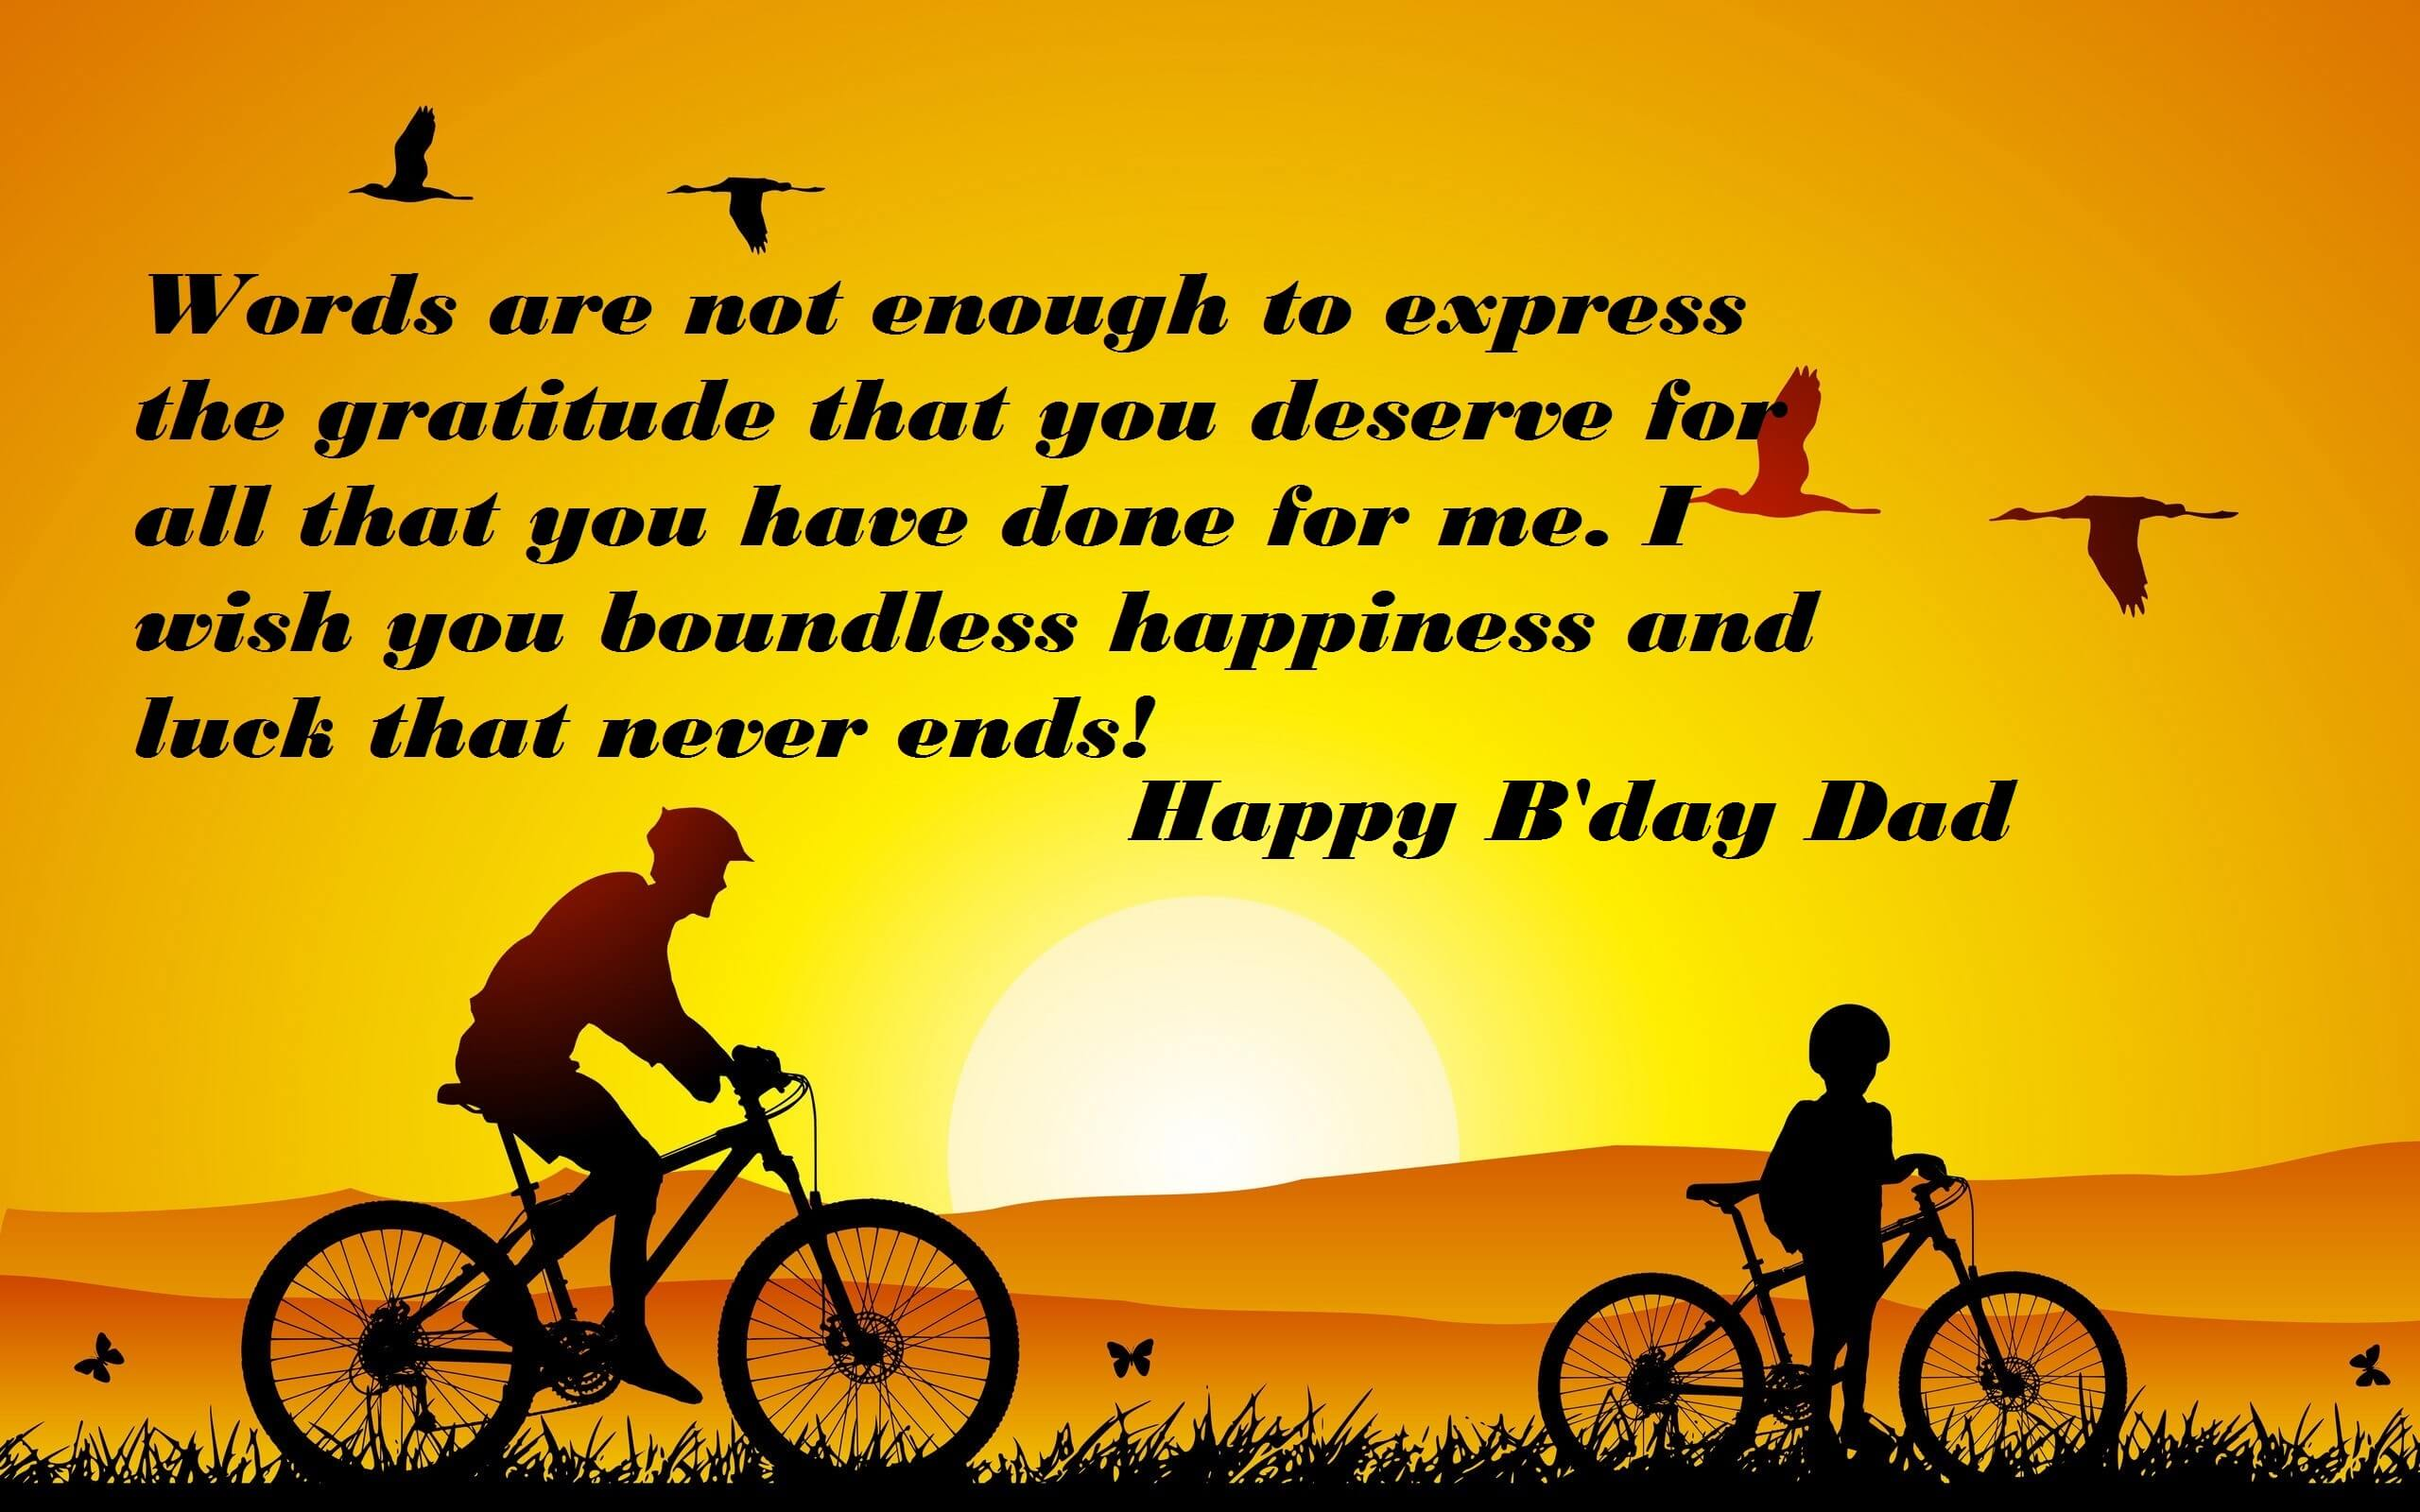 good words for happy birthday ; Happy-Birthday-Wishes-For-Dad-1